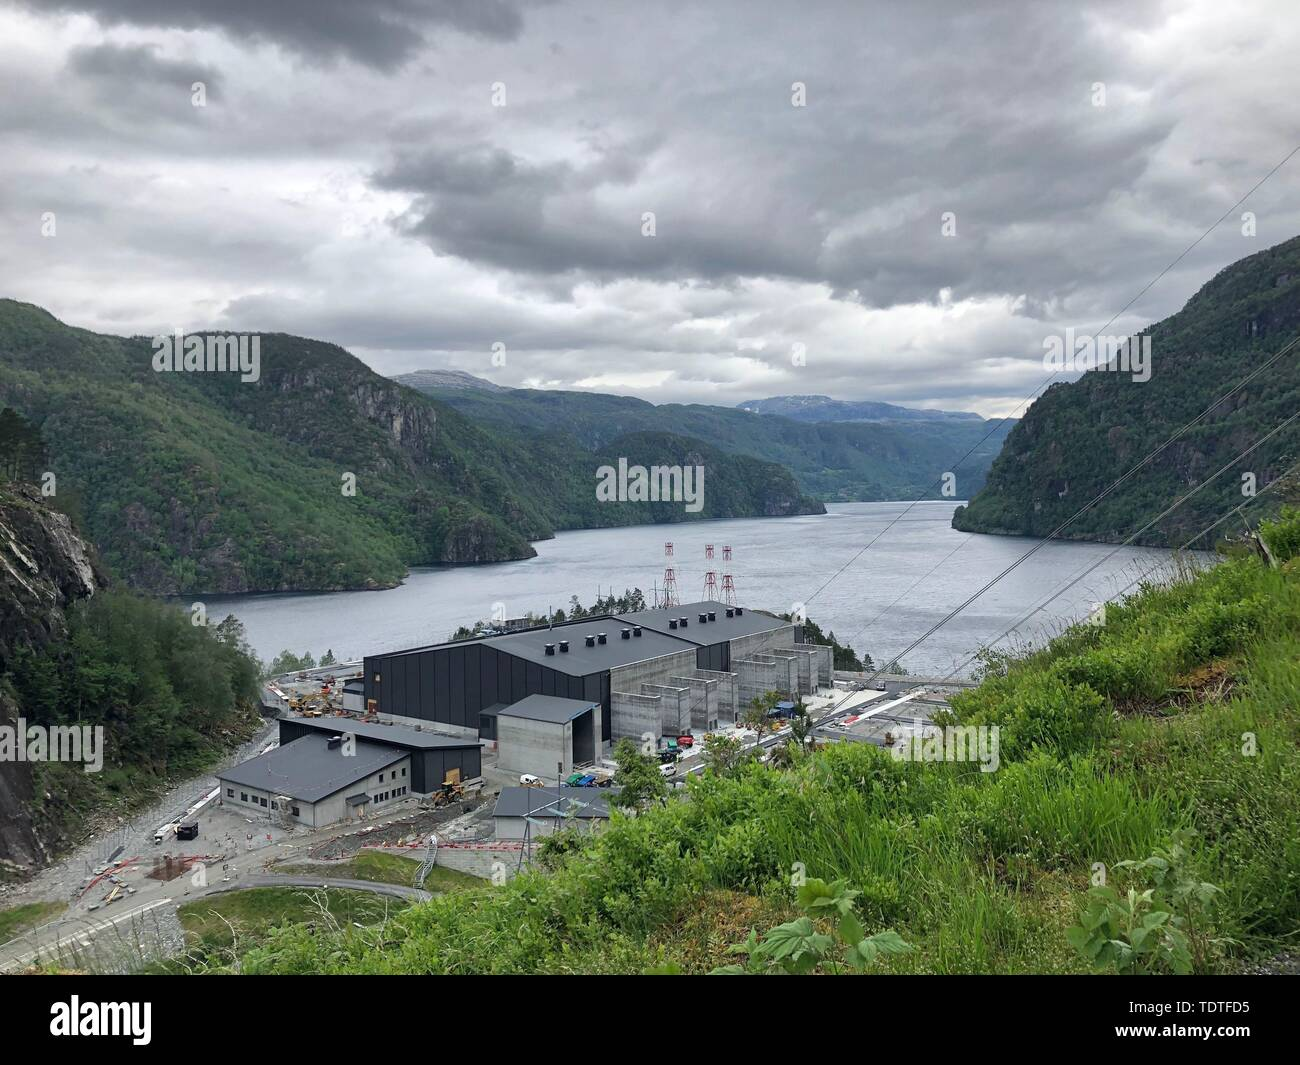 """A converter power station is being built to help transmit electricity from Norway's hydropower to the British grid, as water flowing from mountains to fjords in Norway will soon be helping power British homes, as the world's longest """"interconnector"""" hooks up the two countries' grids. - Stock Image"""